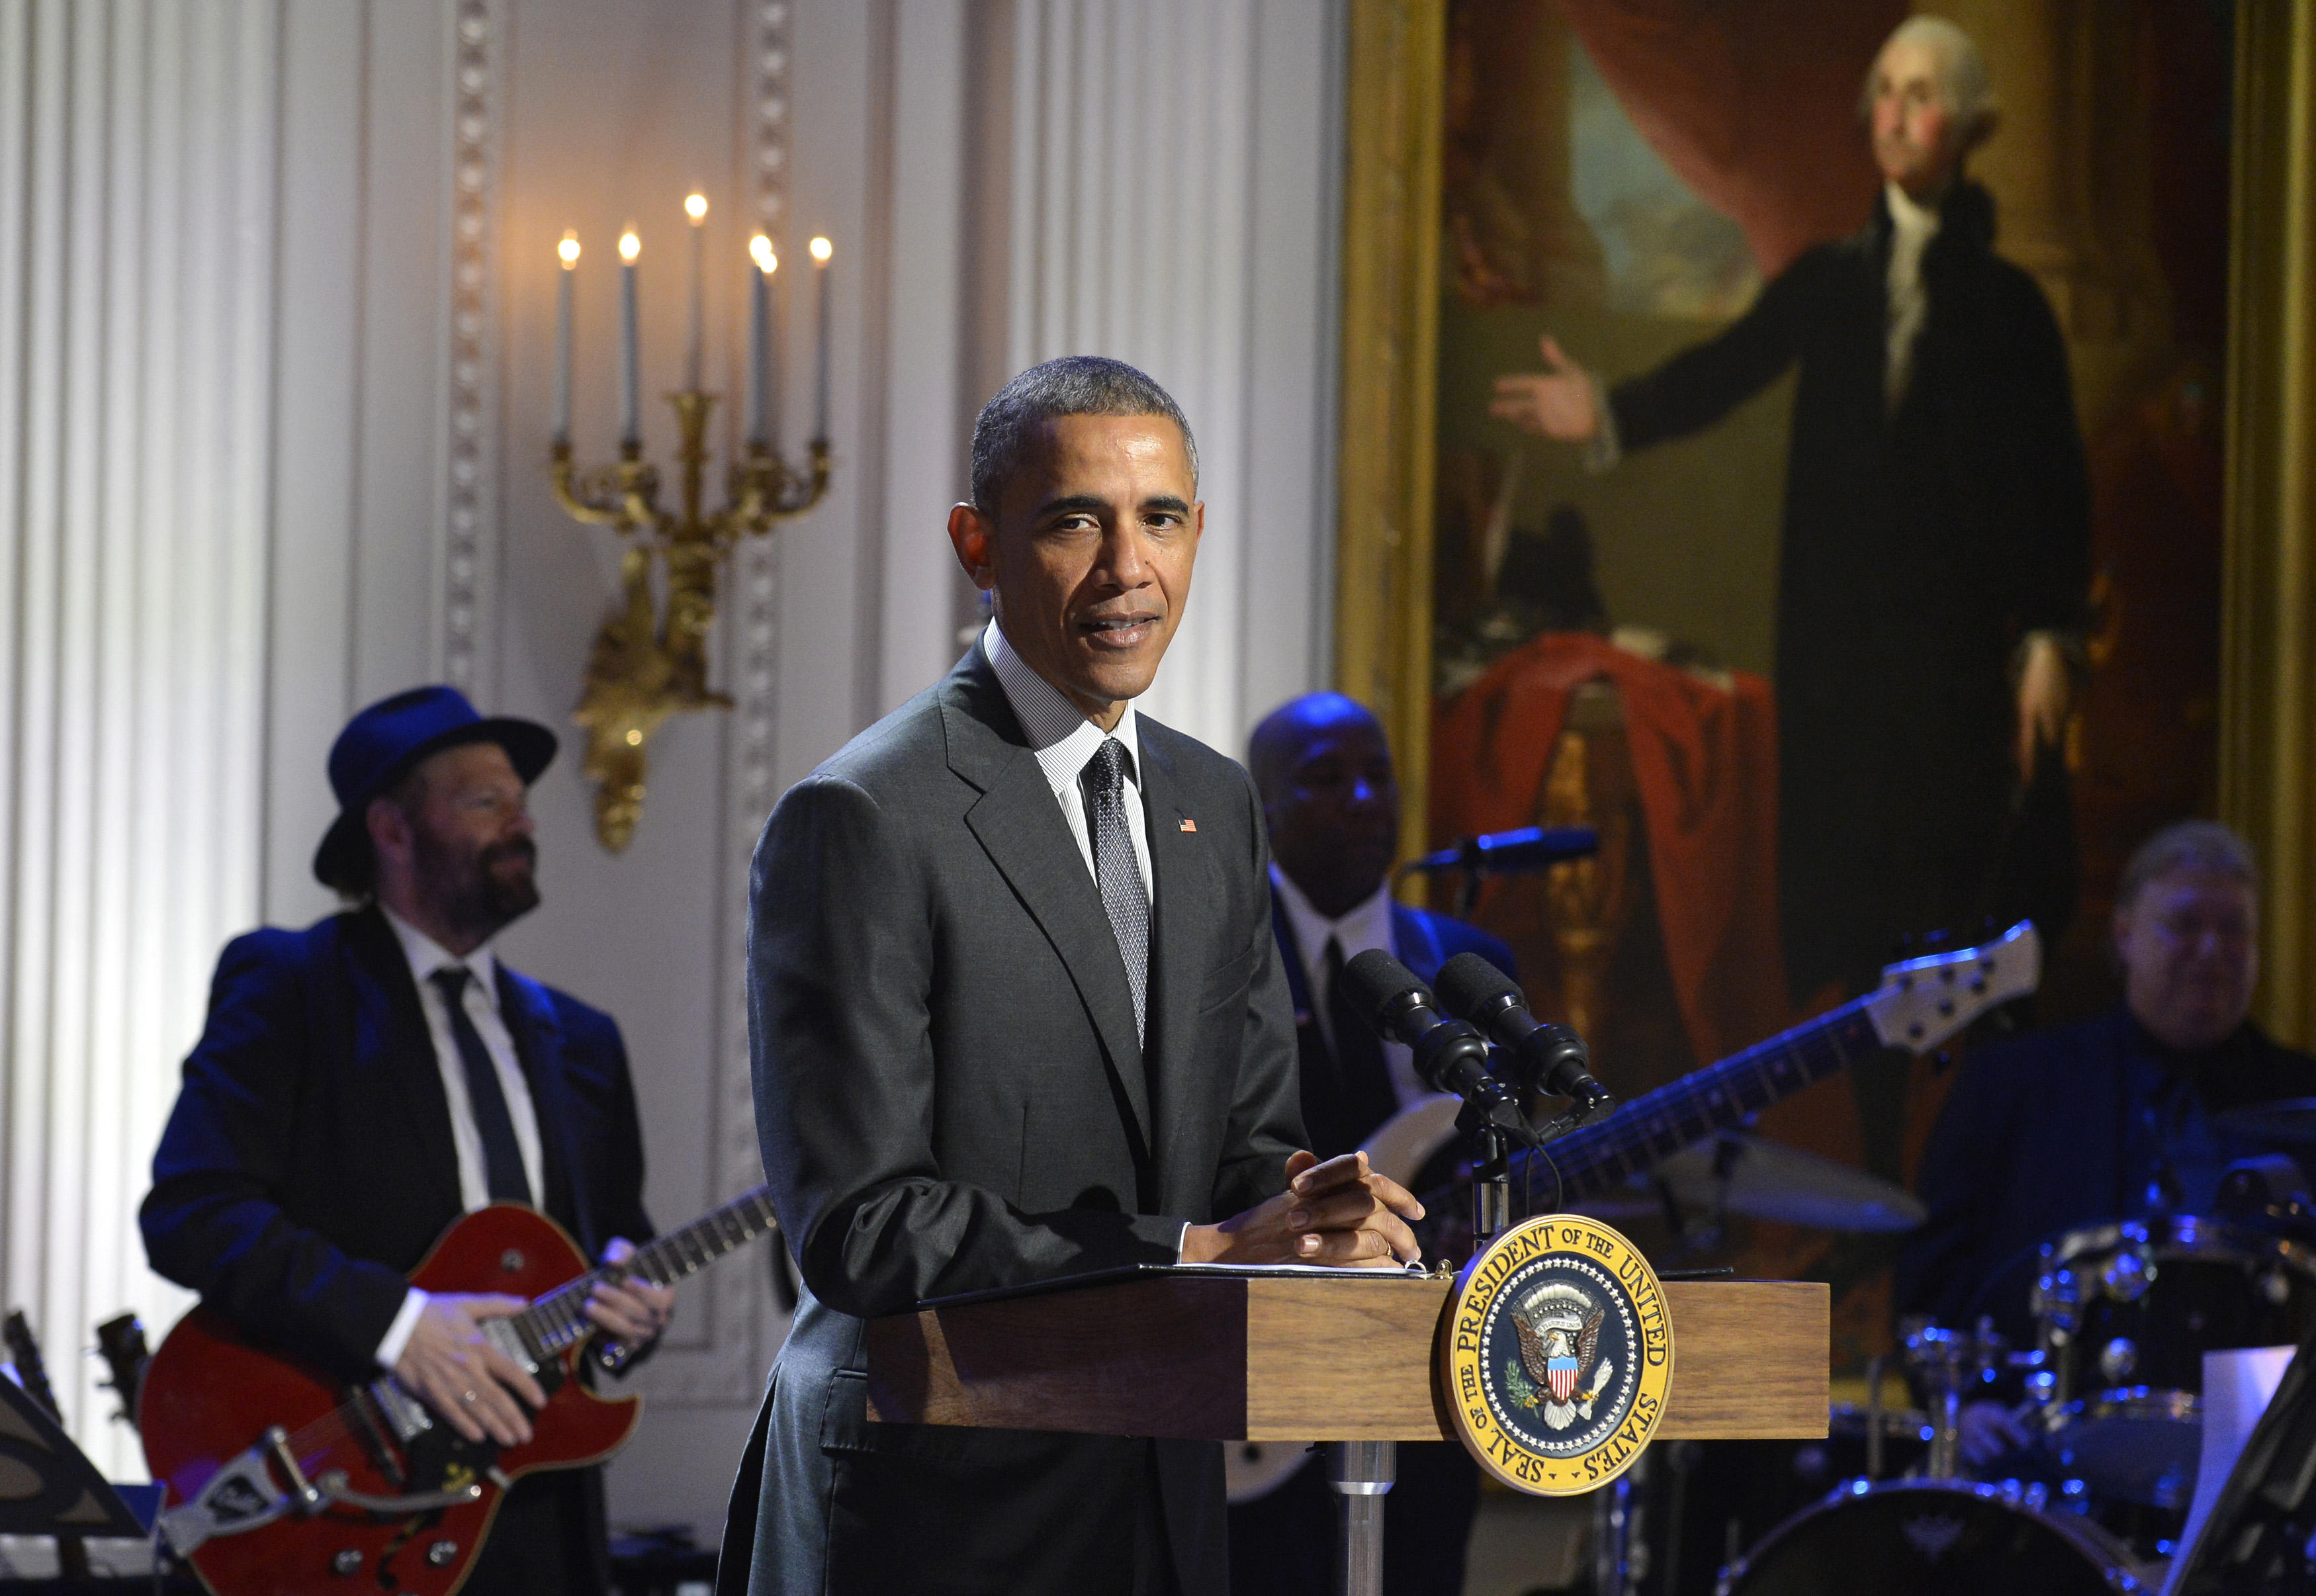 President Obama Attends Evening Of Gospel Music At The White House